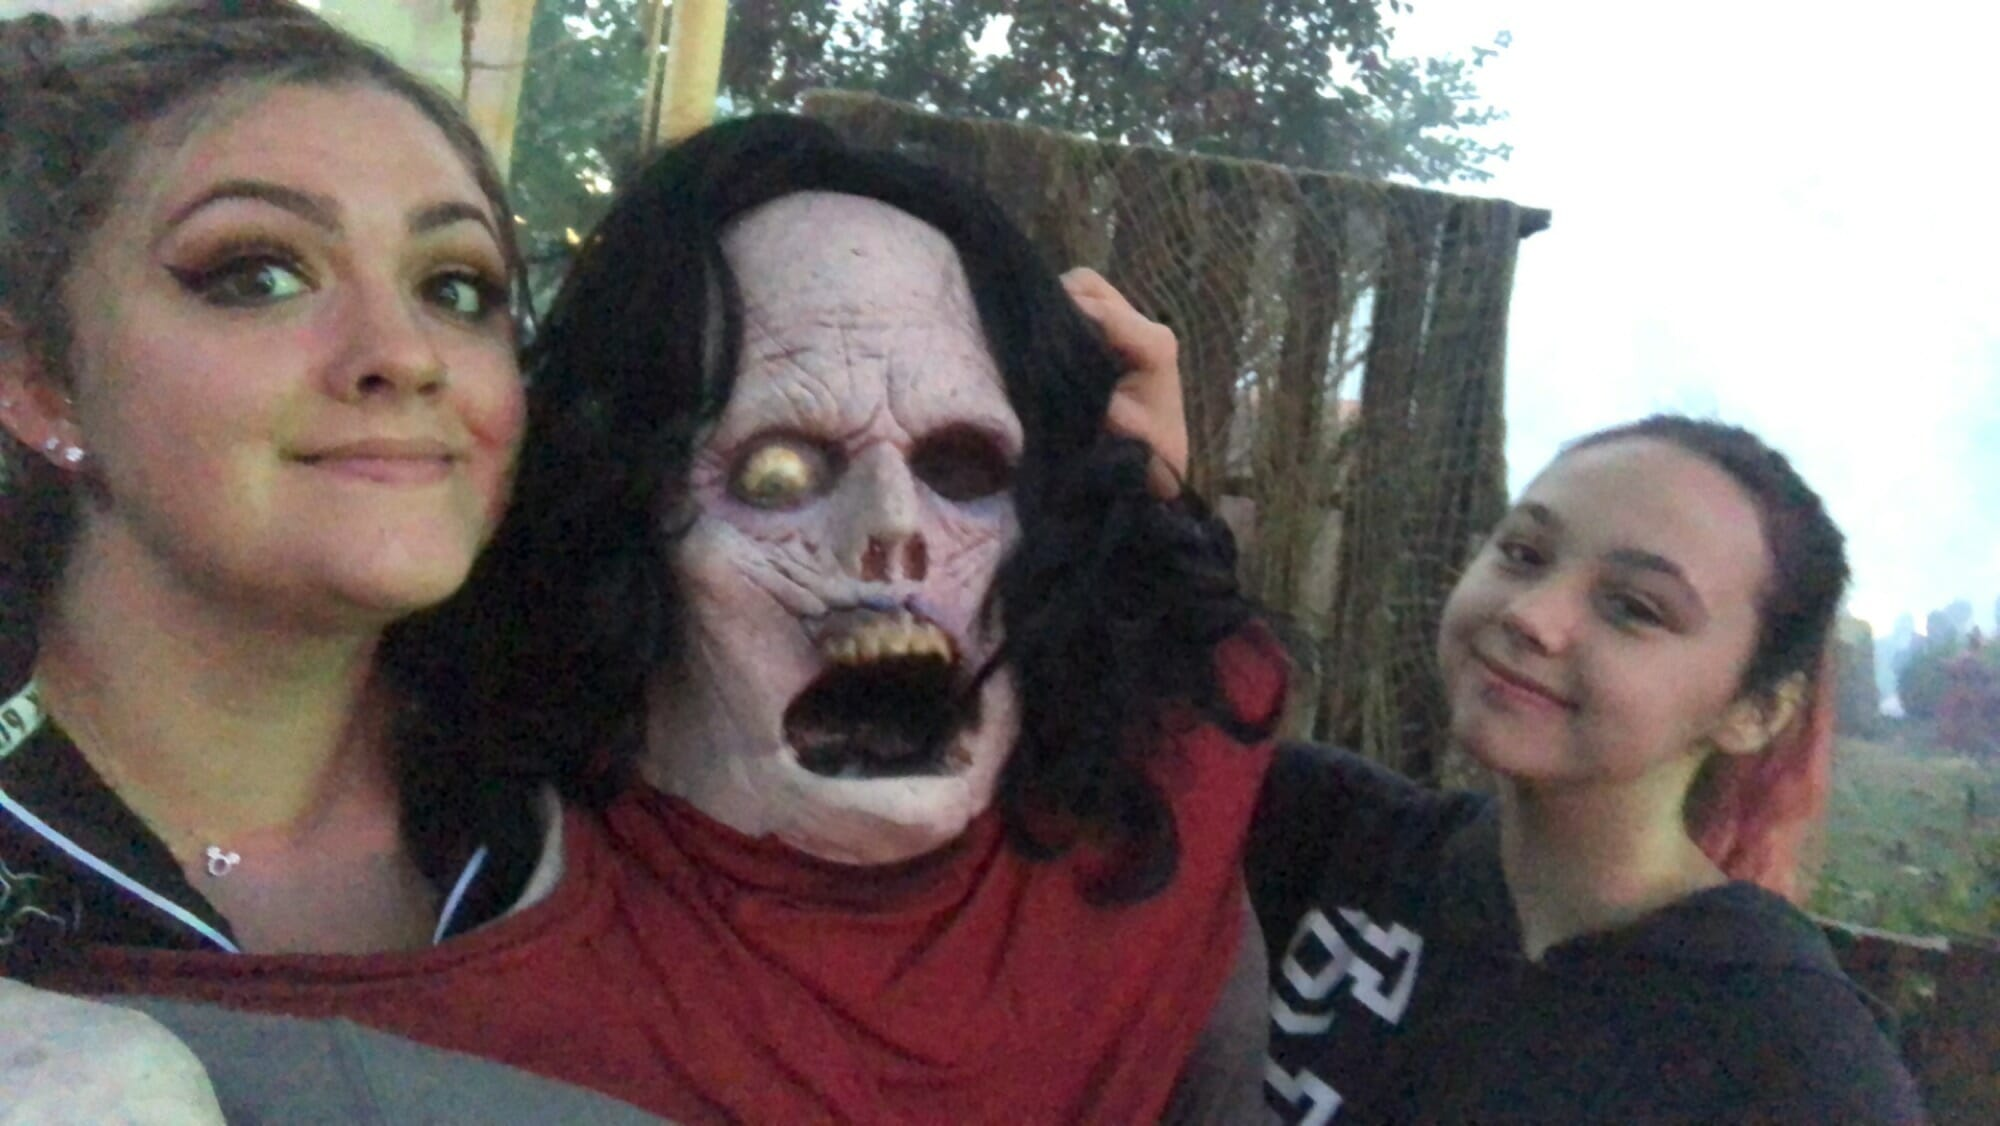 Two girls posing with a zombie